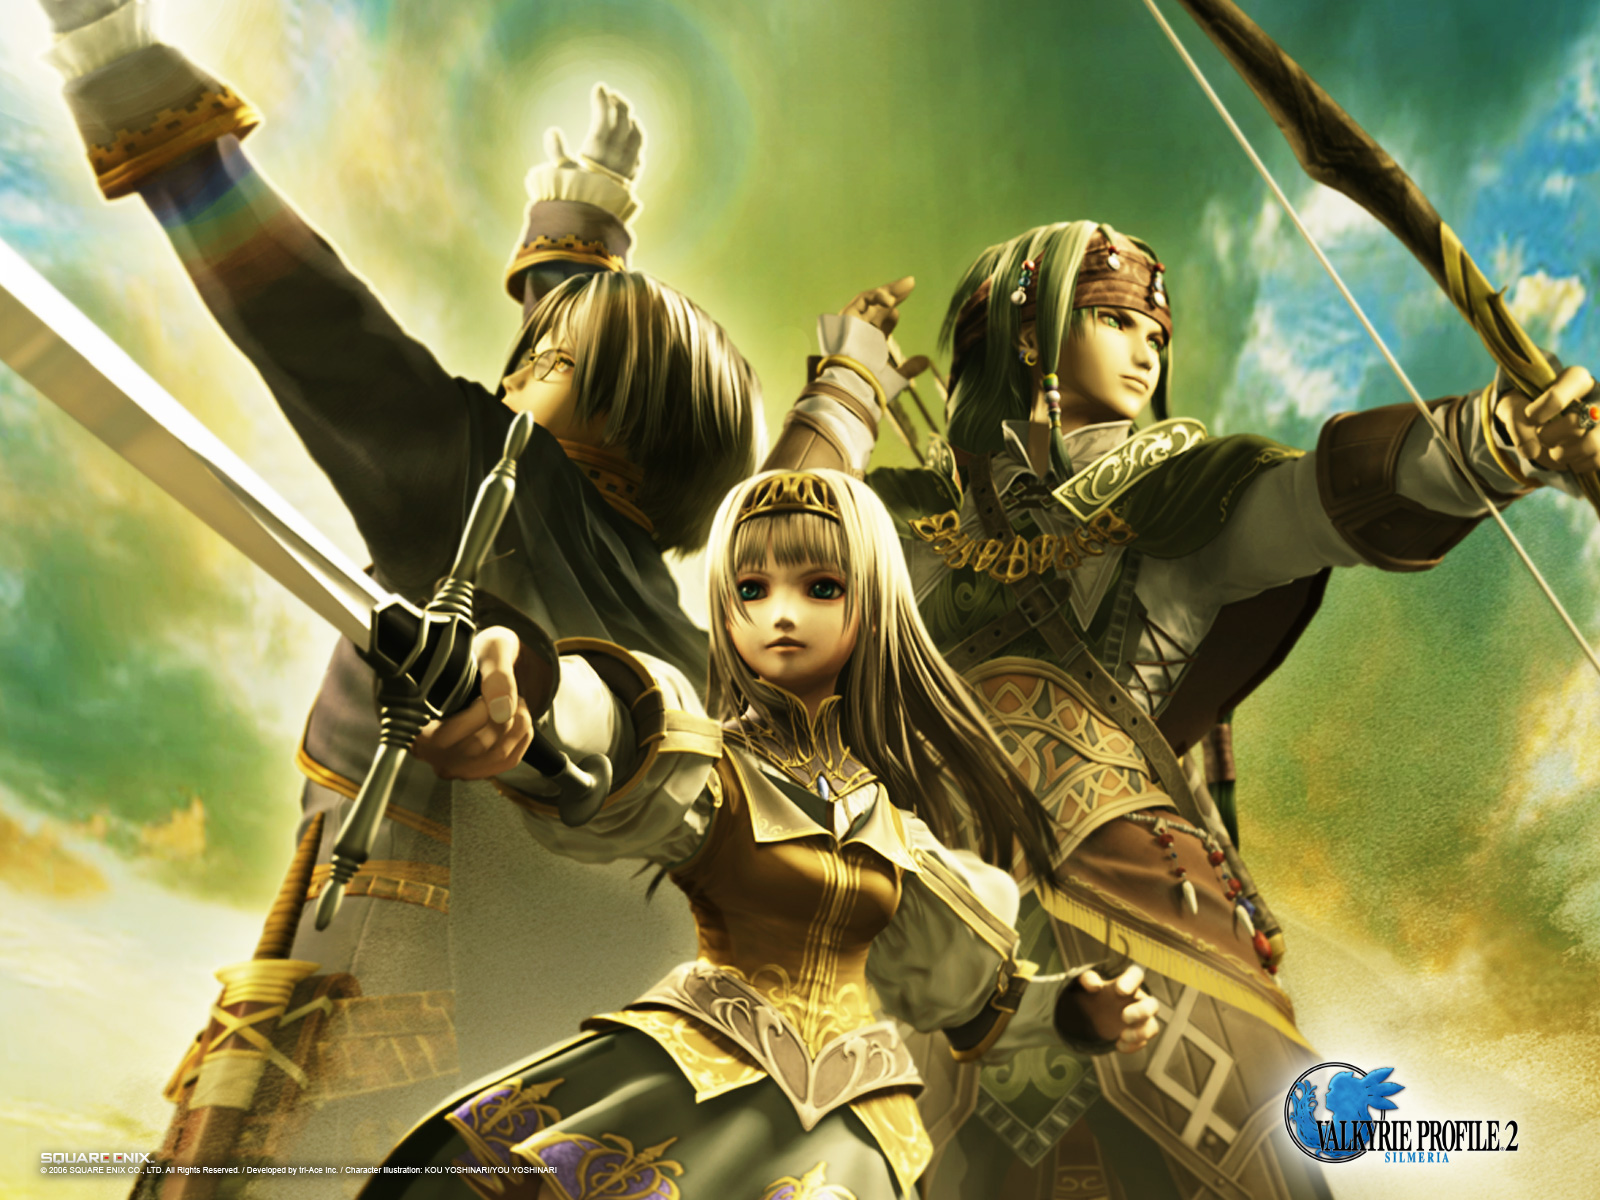 5 PlayStation JRPGs That Dared to Defy